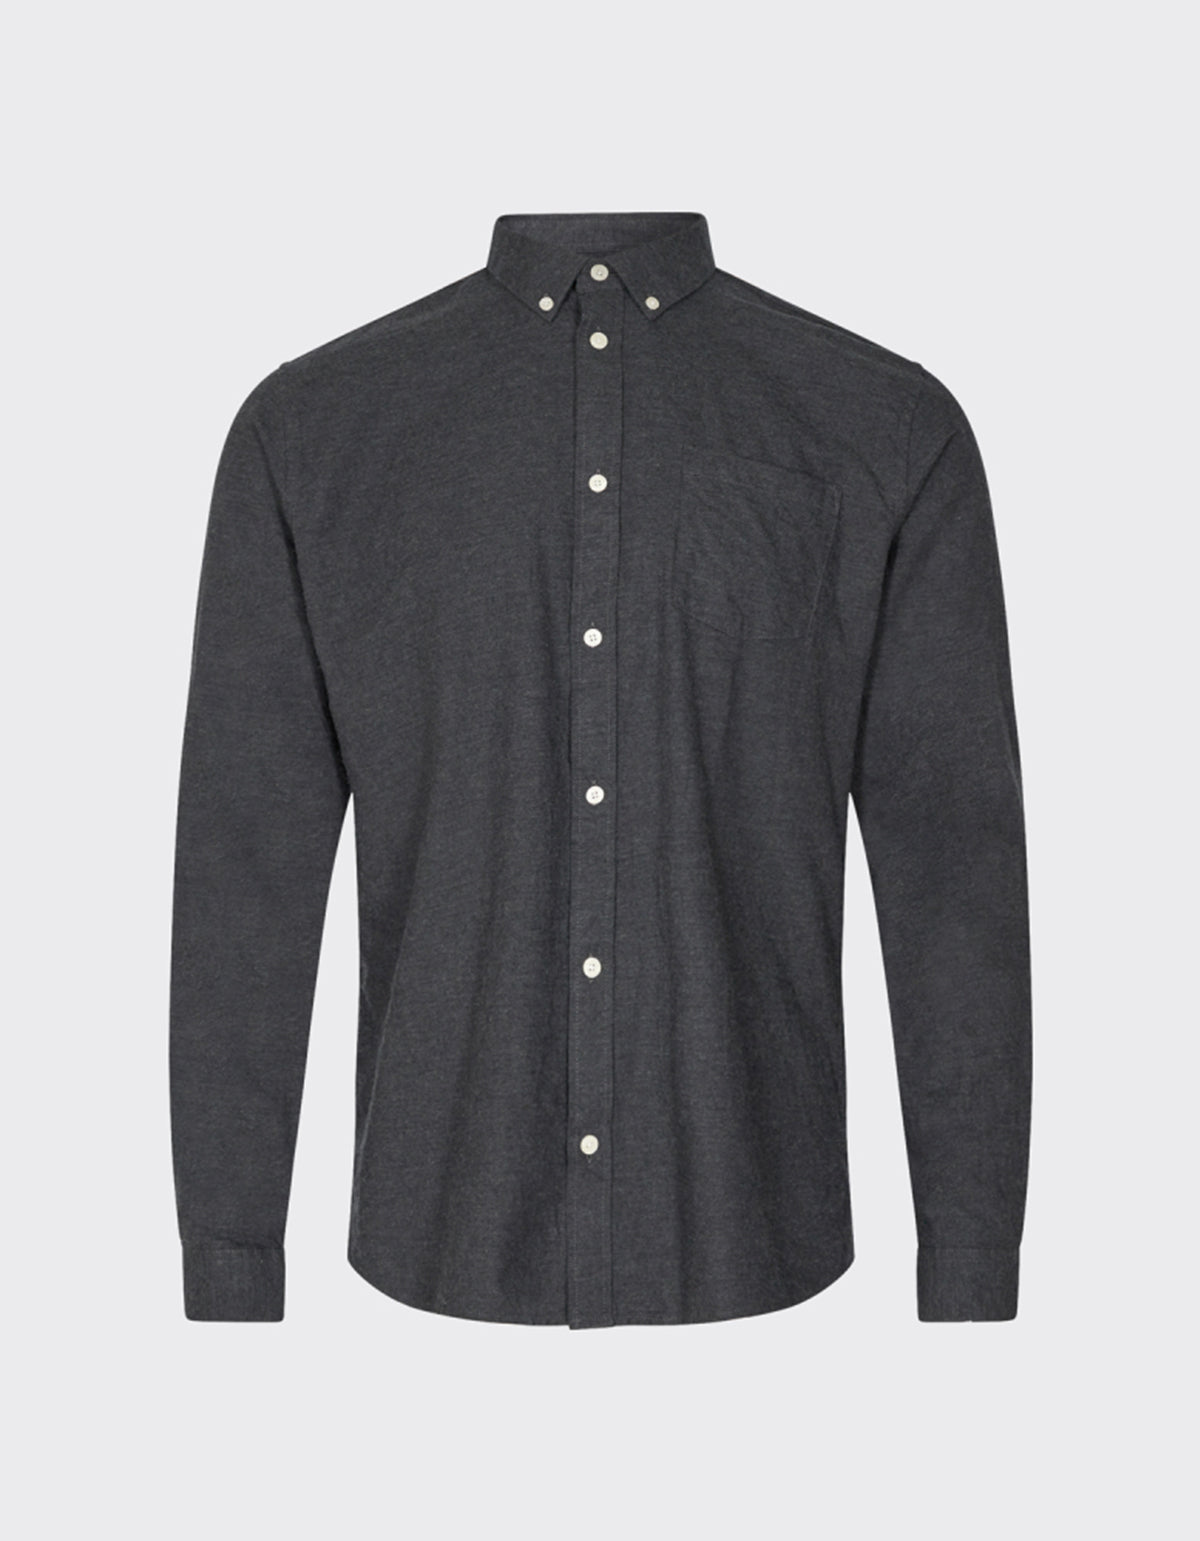 Minimum Jay 2.0 Shirt Carbon Melange